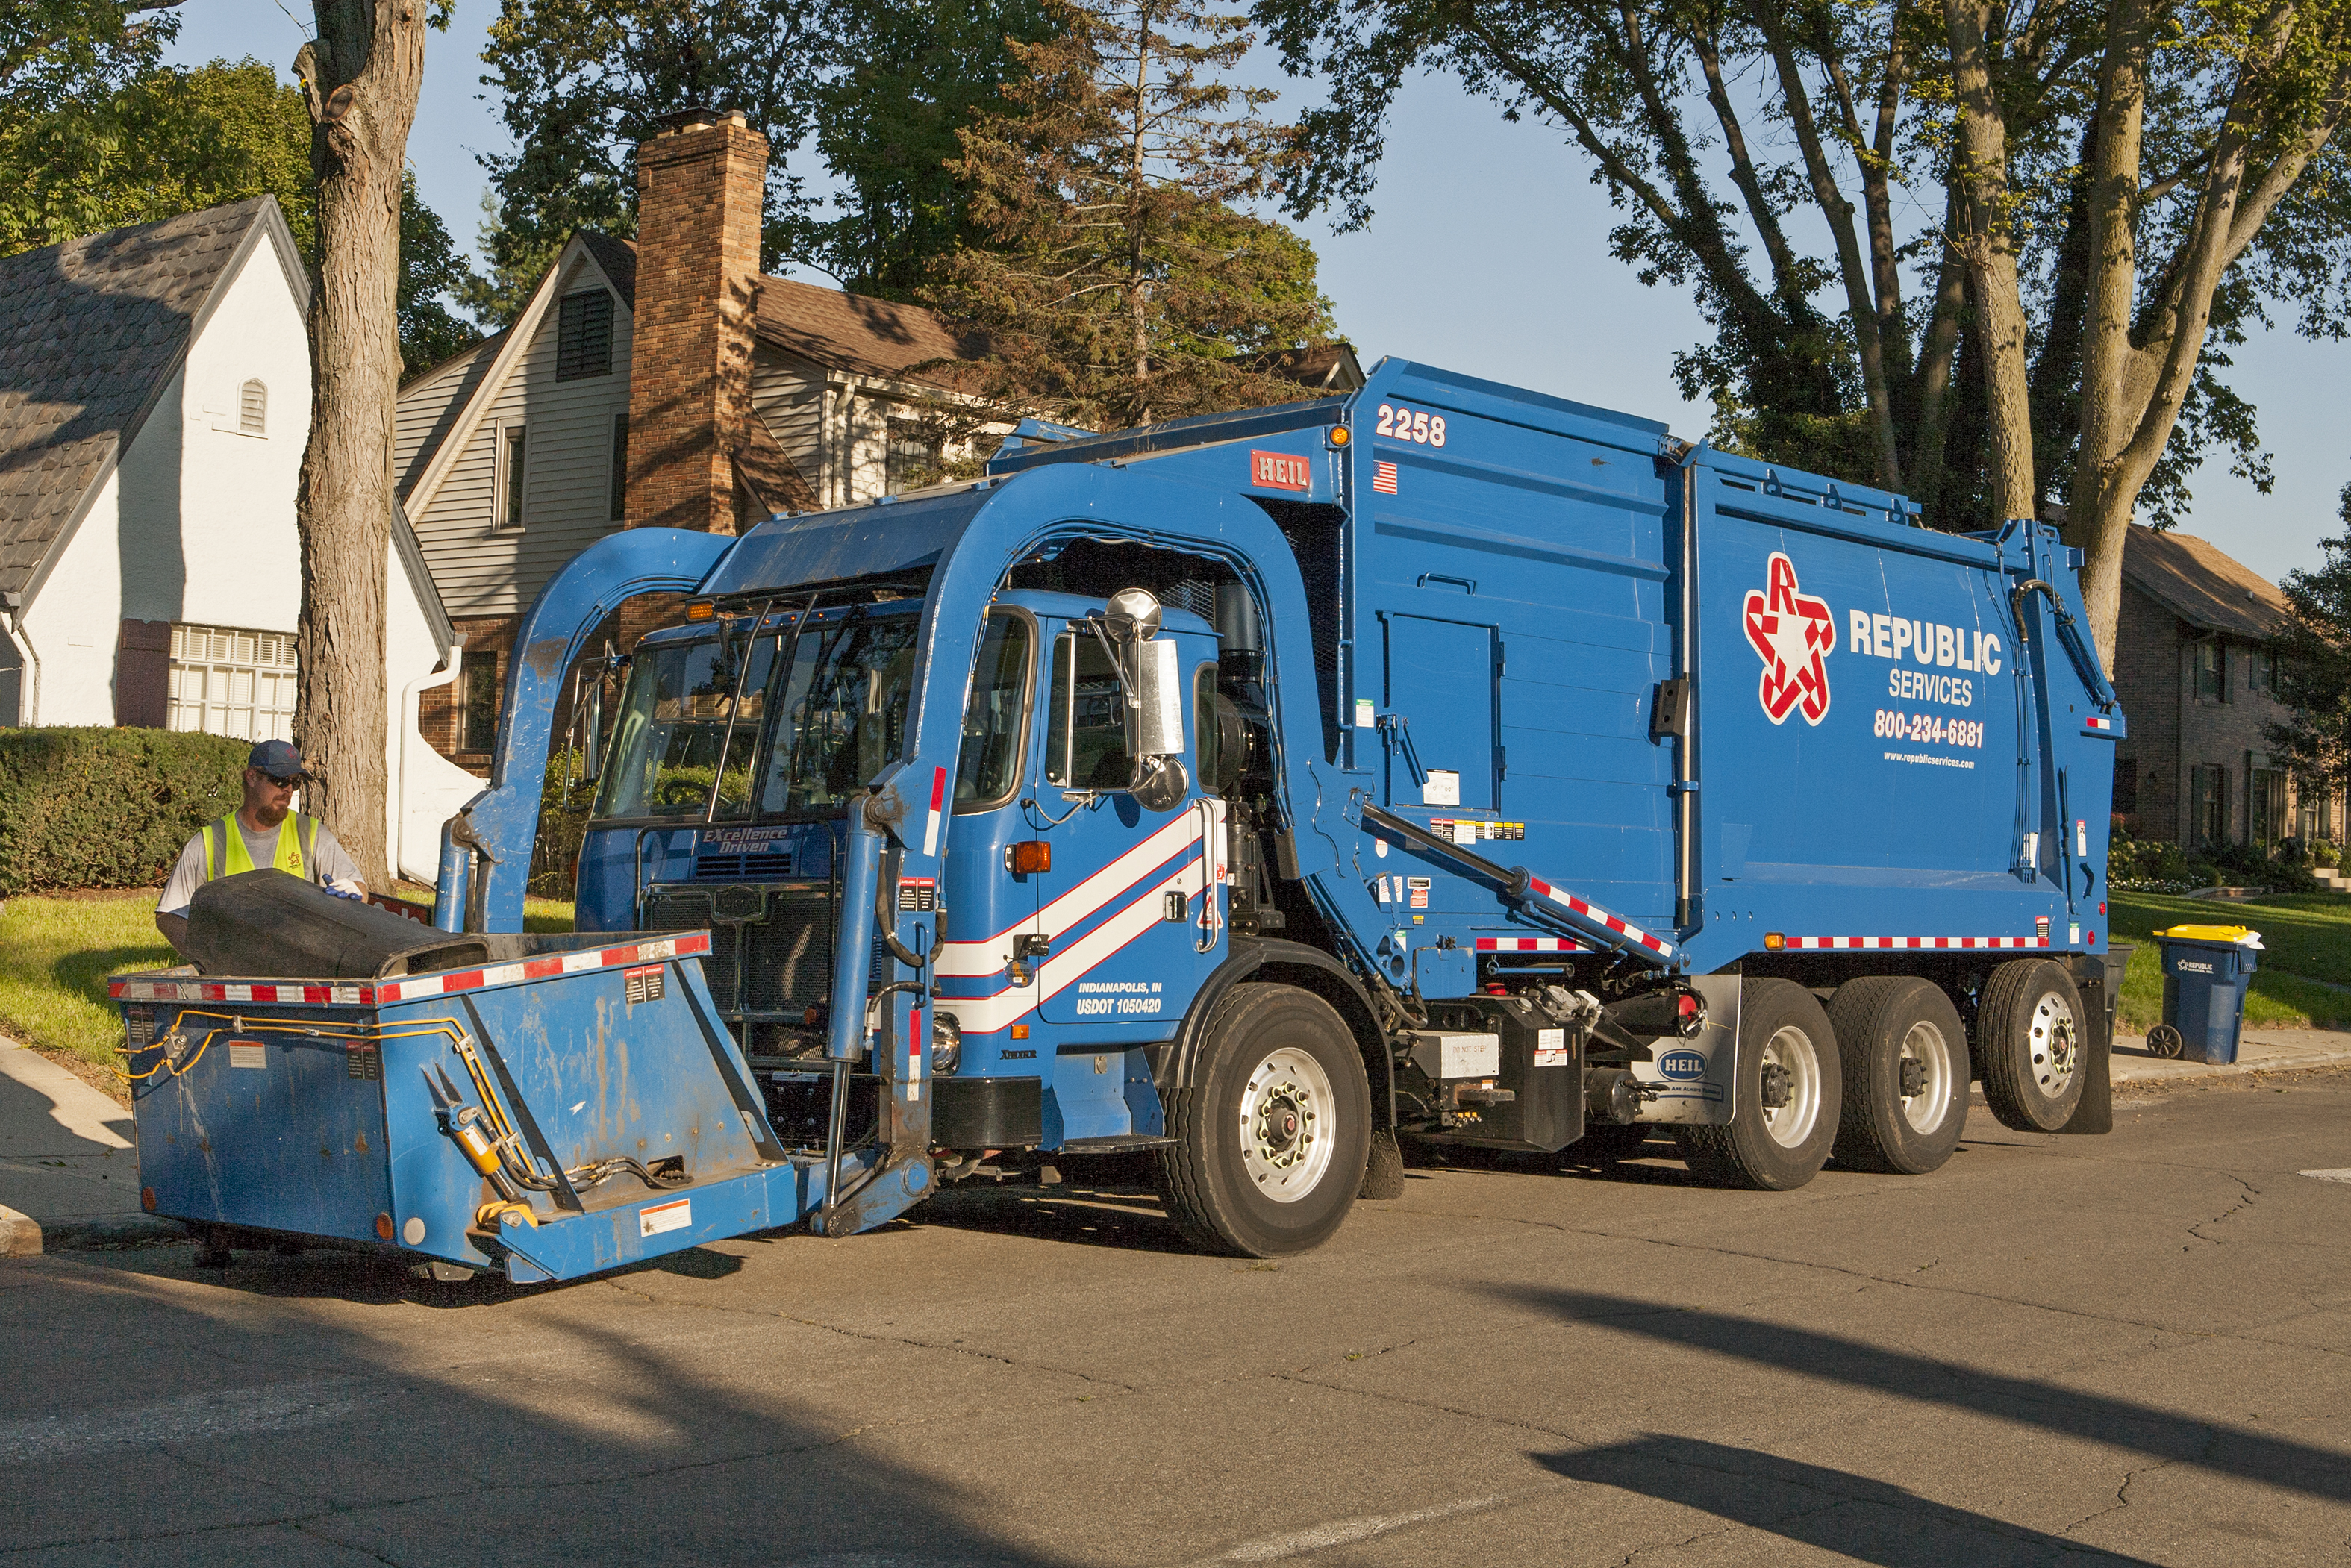 Show Picture Of Trash Truck JPG